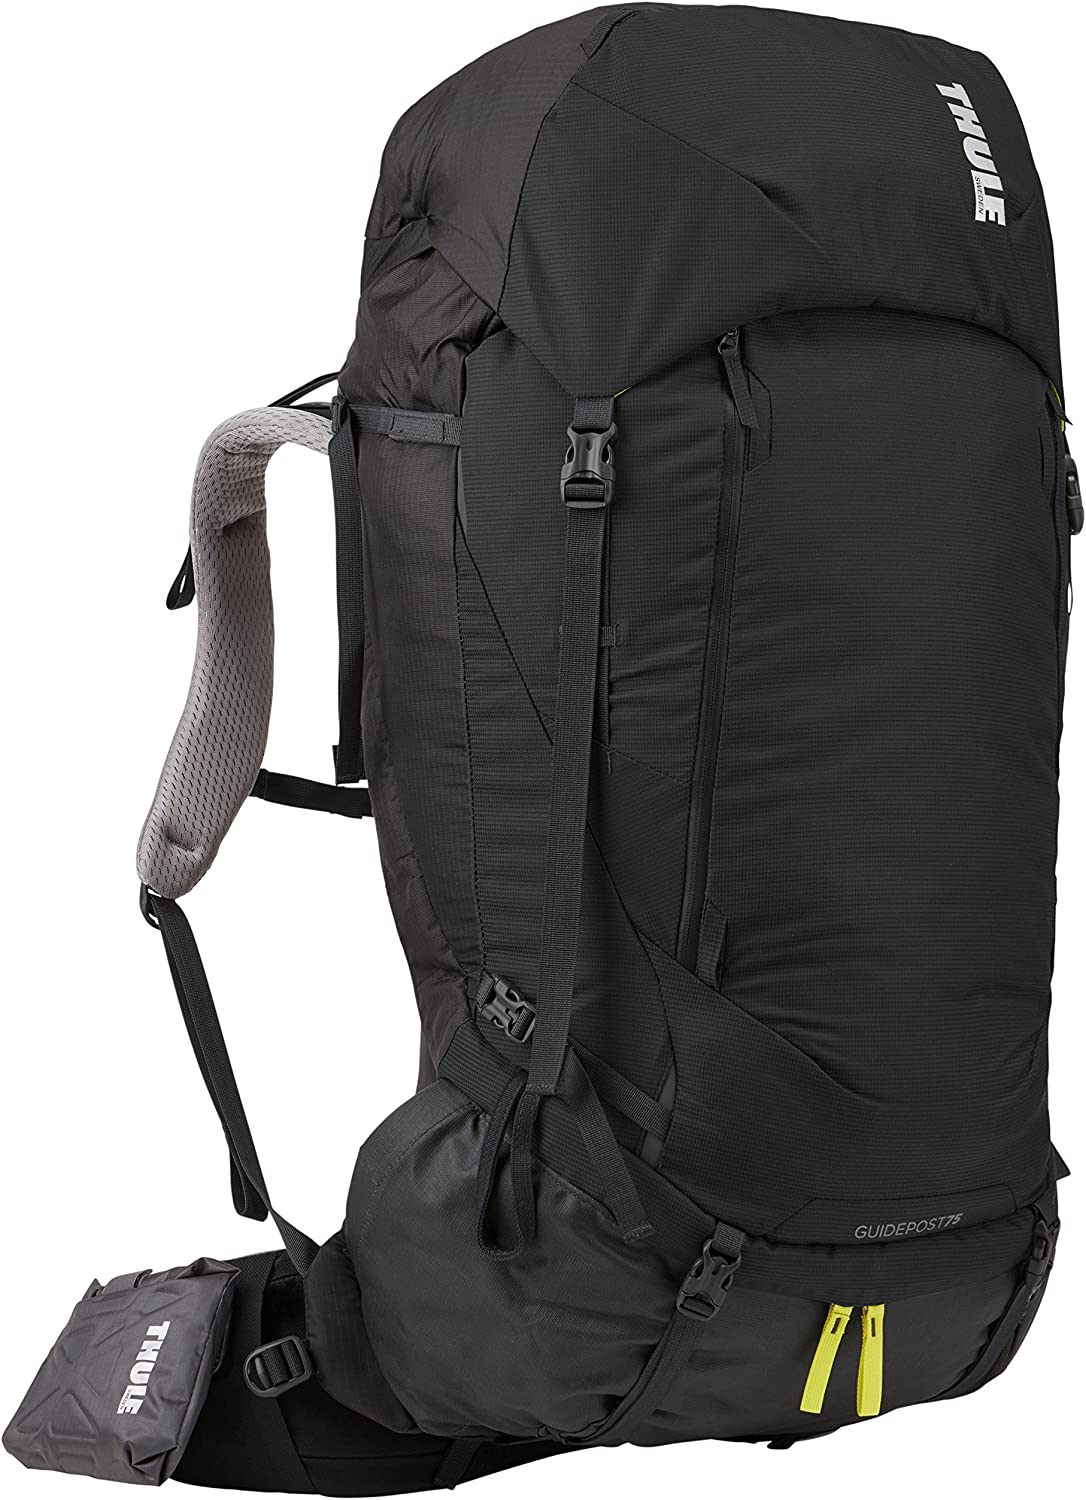 Thule Men s Guidepost Backpacking Pack